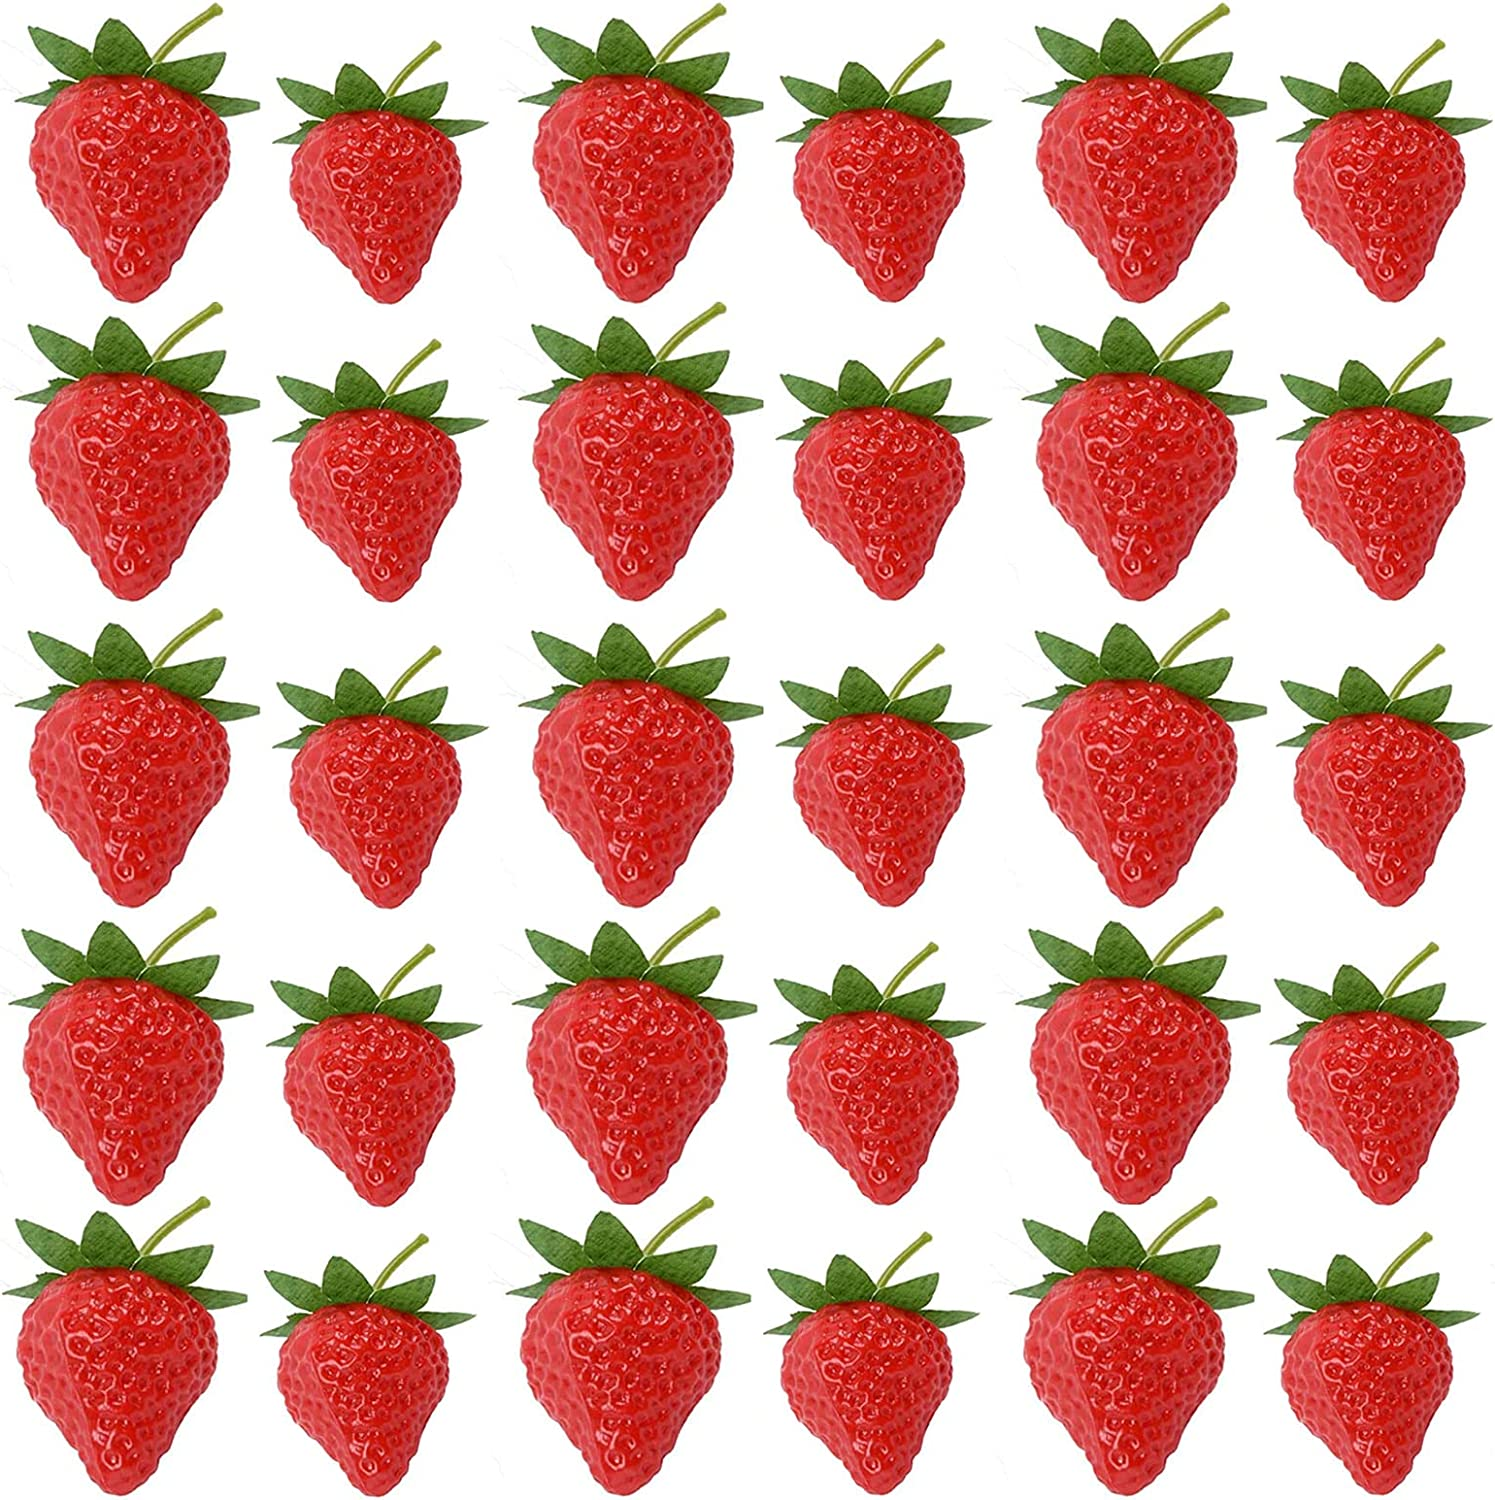 RONRONS 40 Pieces Artificial Strawberry Lifelike Fruit Plastic Red Fake Strawberries Arrangements Vase Fillers Display Photography Prop Decor Home Kitchen Cabinet Party Ornament Supplies, S & L